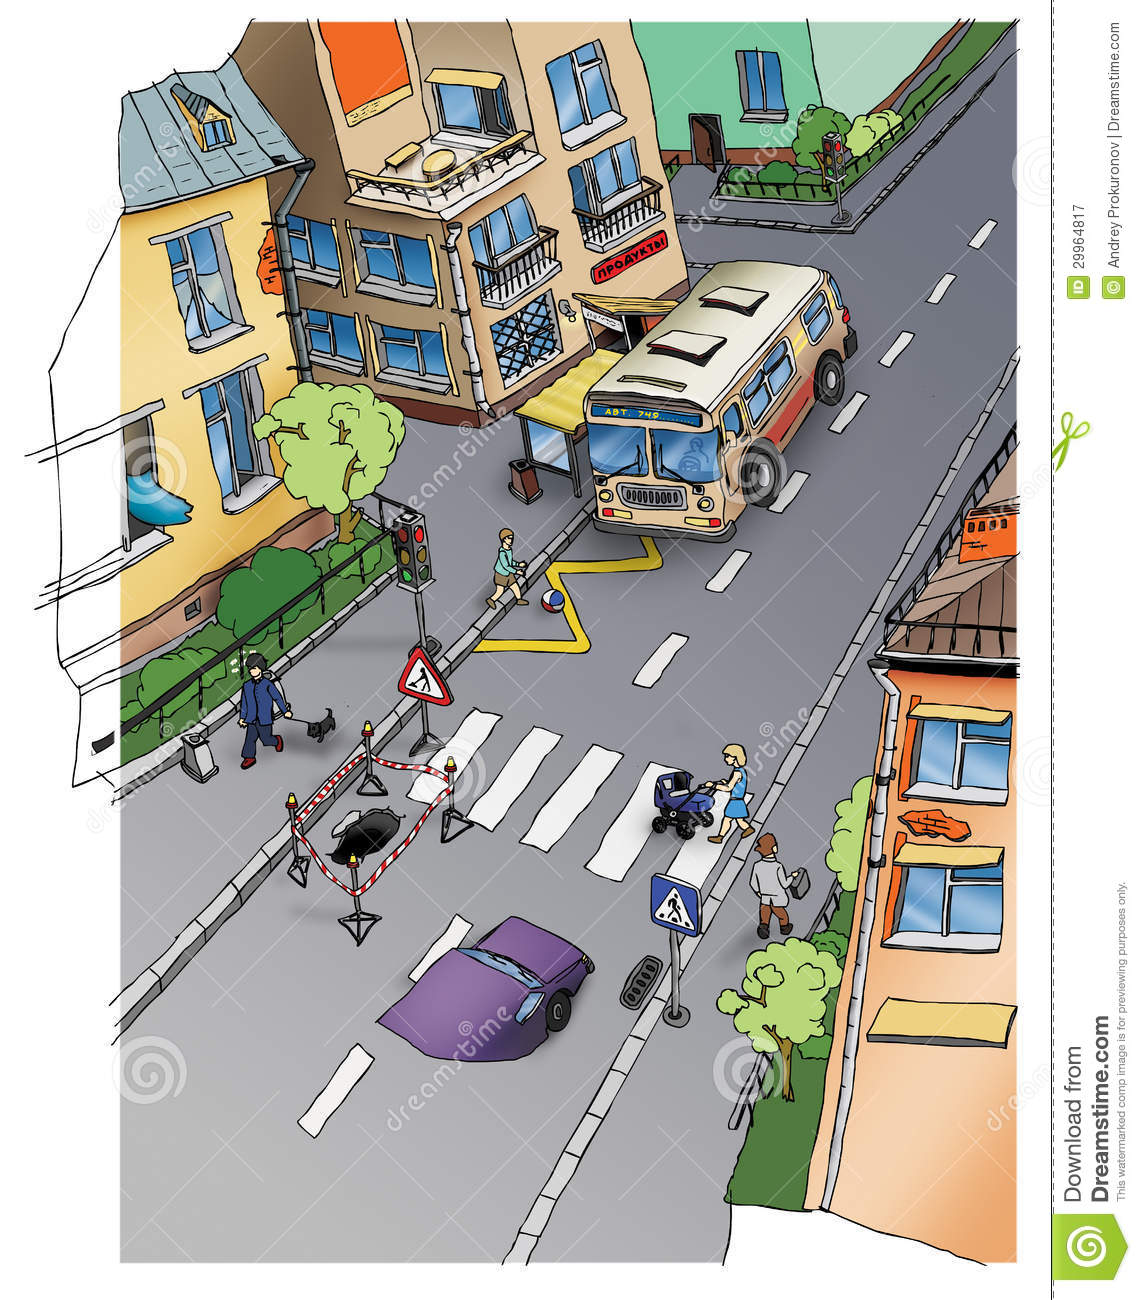 Road Safety Street Drawing Stock Image